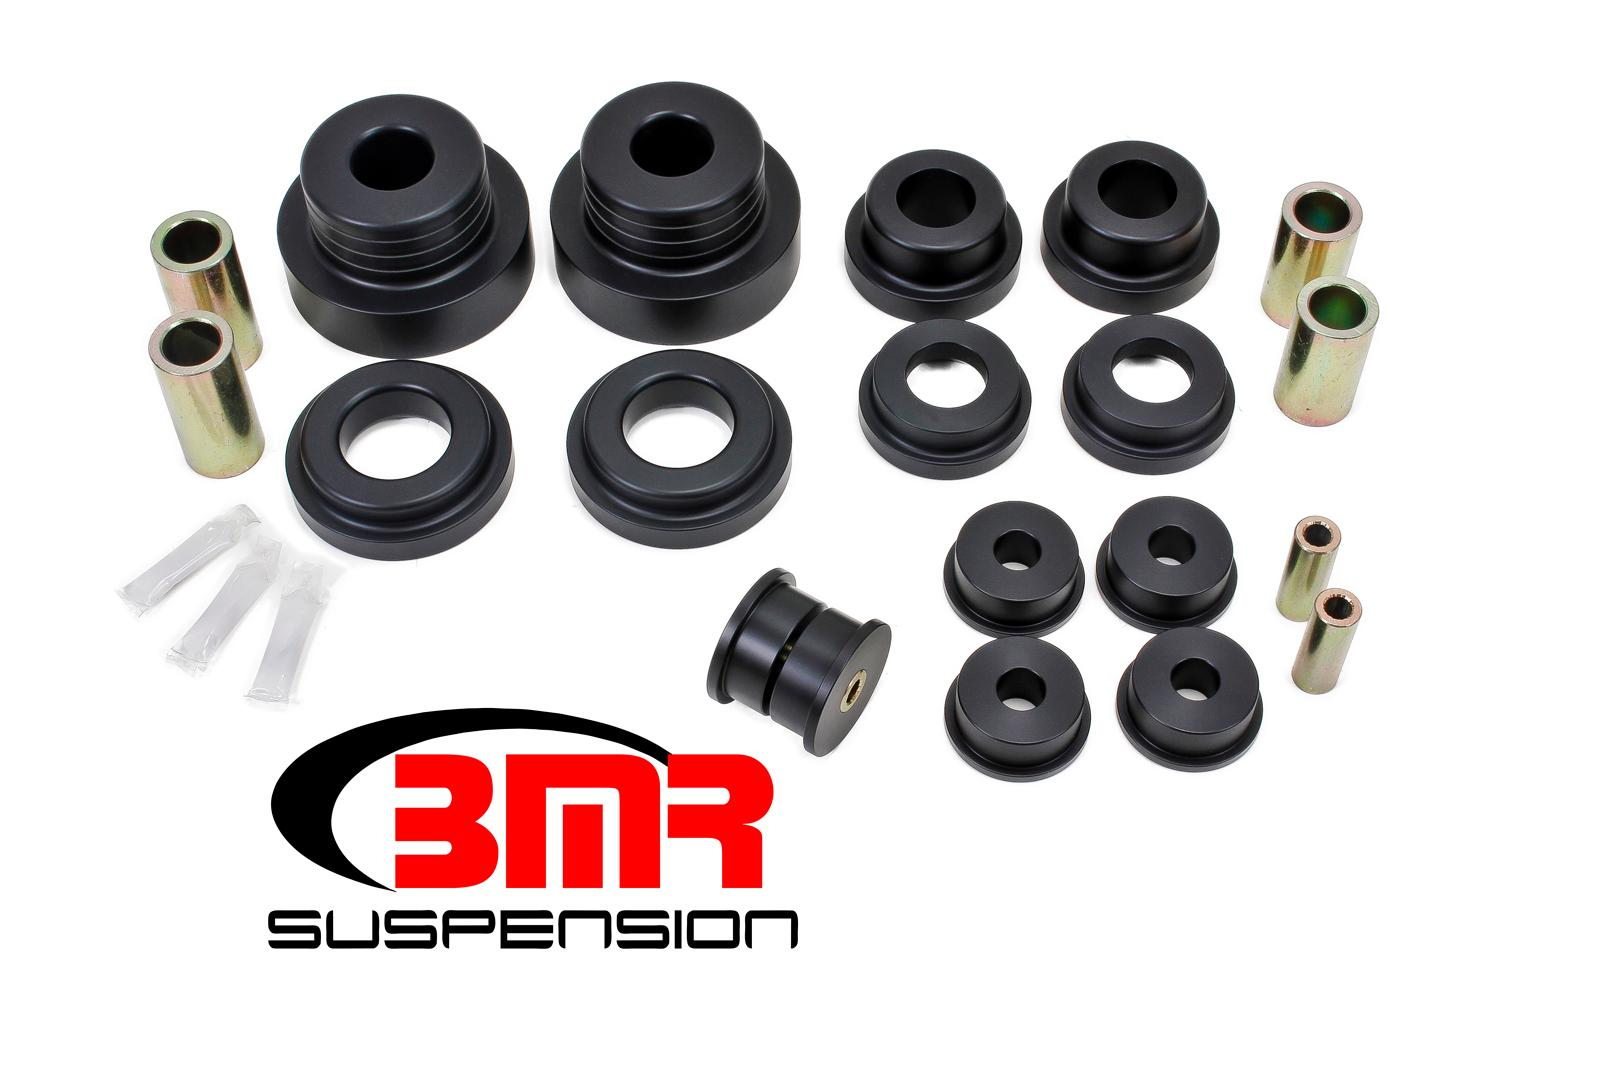 BMR Suspension 2010-14 Camaro Race Rear Cradle Bushing Kit